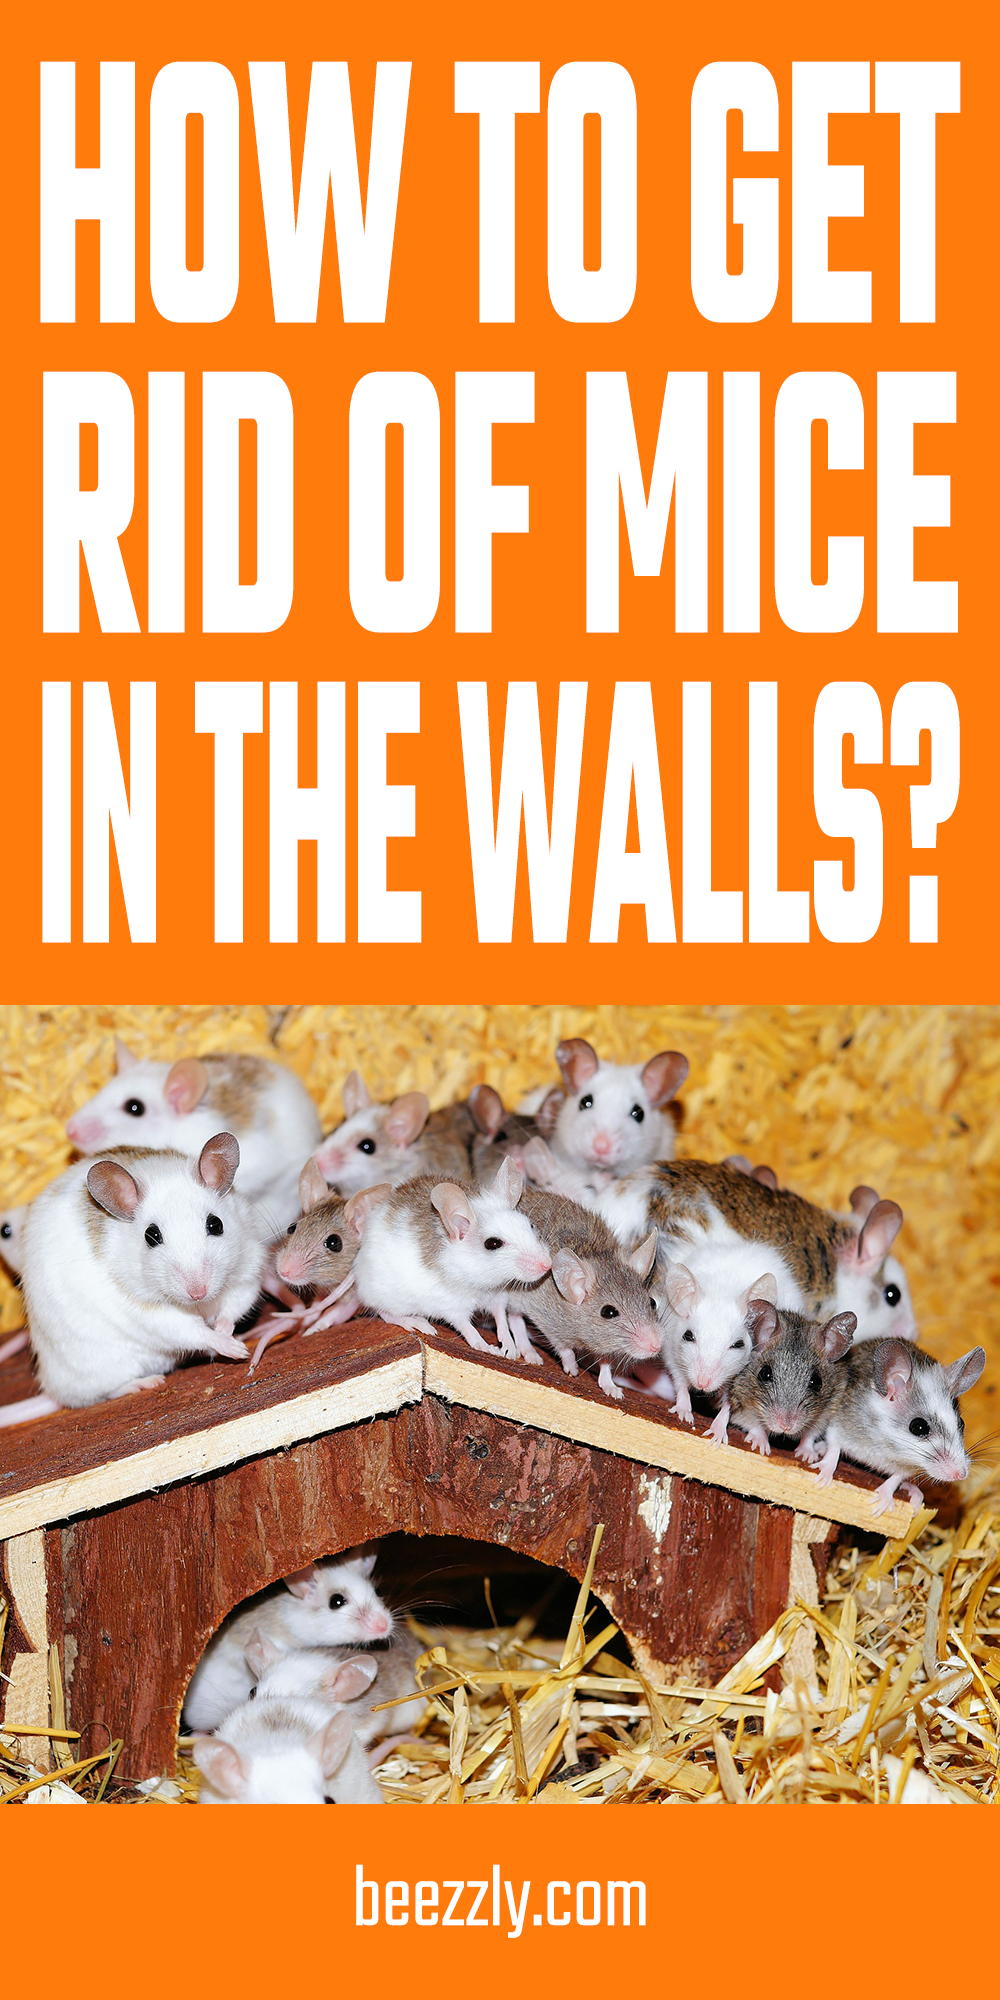 How To Get Rid Of Mice In The Walls Mouse Nest Getting Rid Of Mice Mouse Diy Household Tips